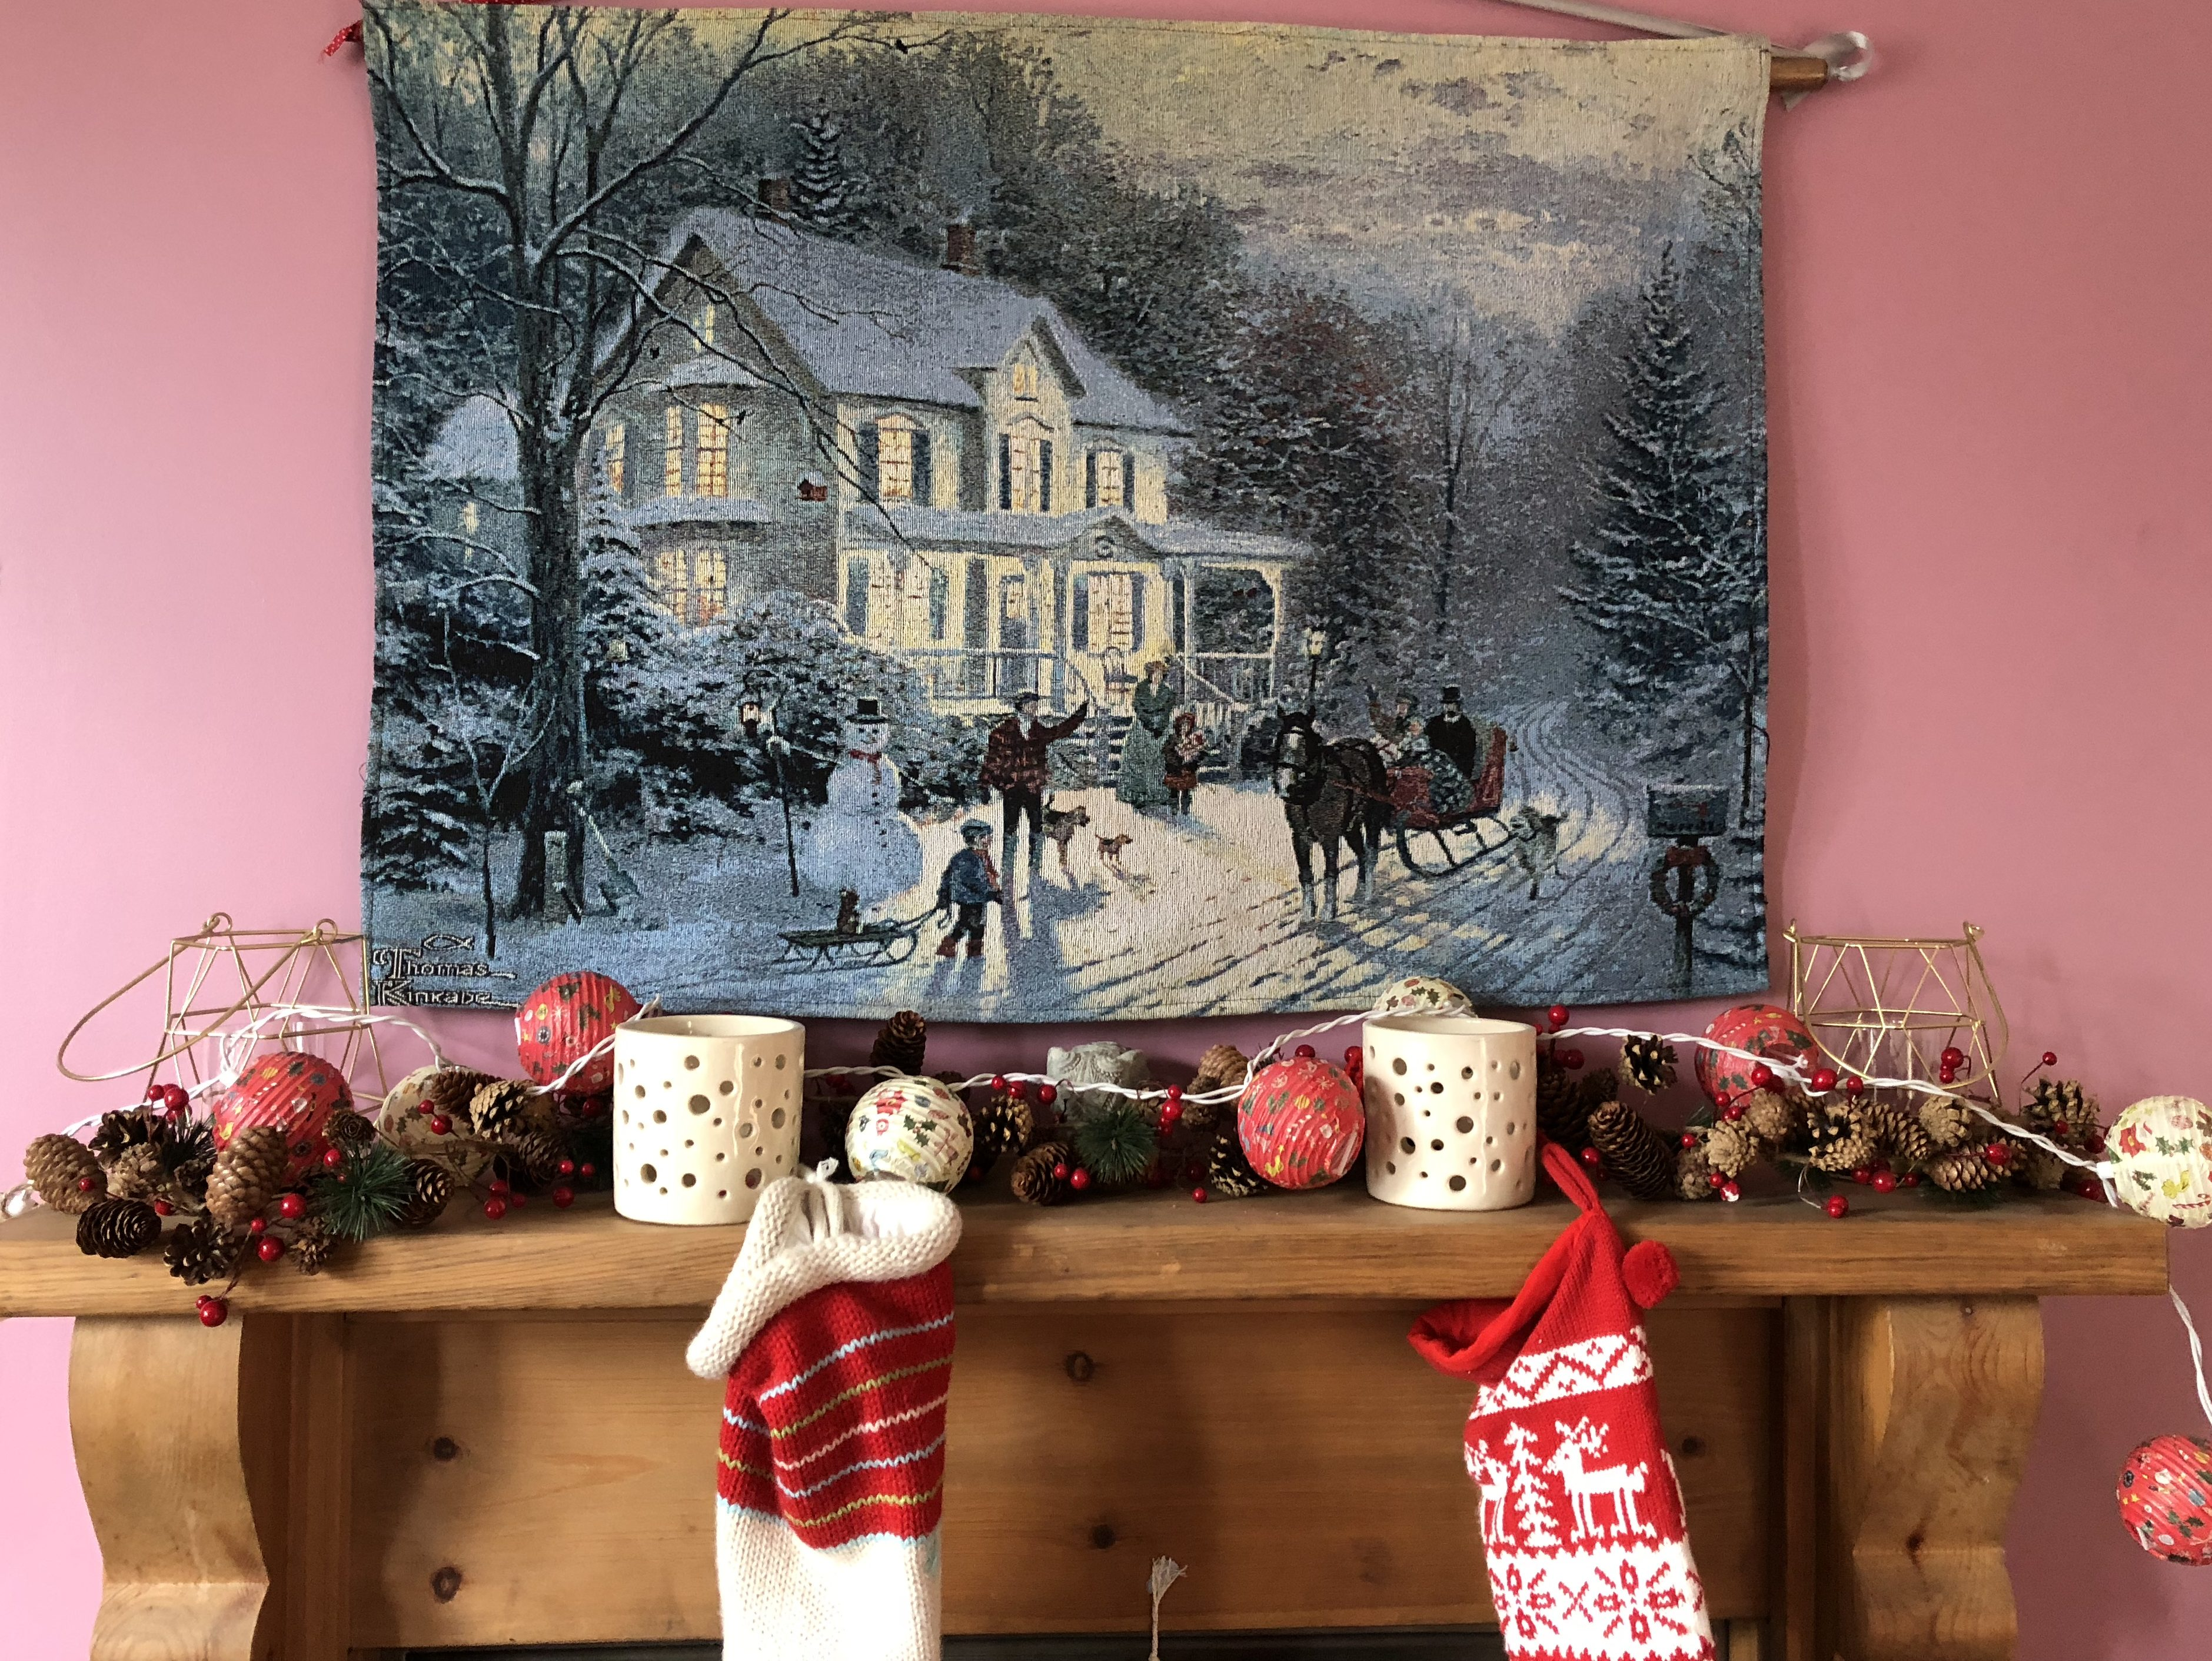 Is Christmas the best time to sell a house? My festive mantlepiece complete with stockings and snowy house scene tapestry.